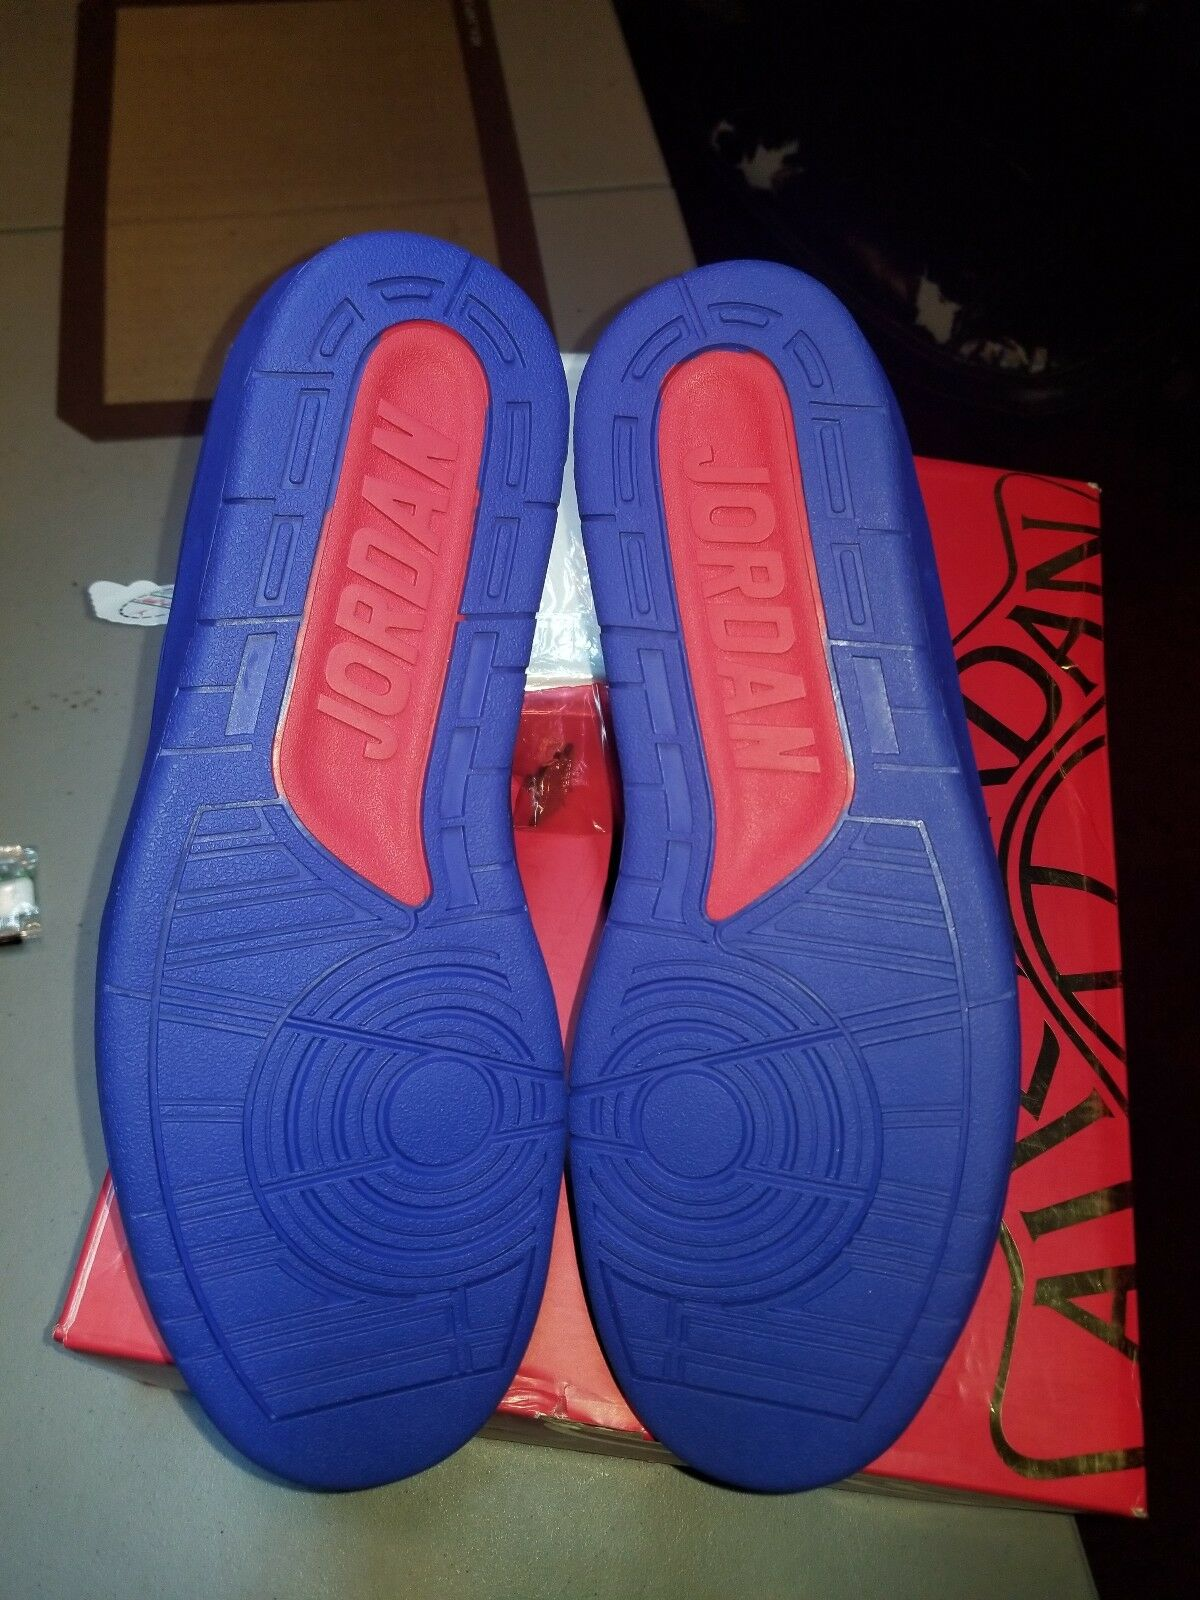 AIR JORDAN 2 RETRO DON C blueE blueE blueE SIZE 12 VERY LIMITED supreme kith channel BBC fdc355